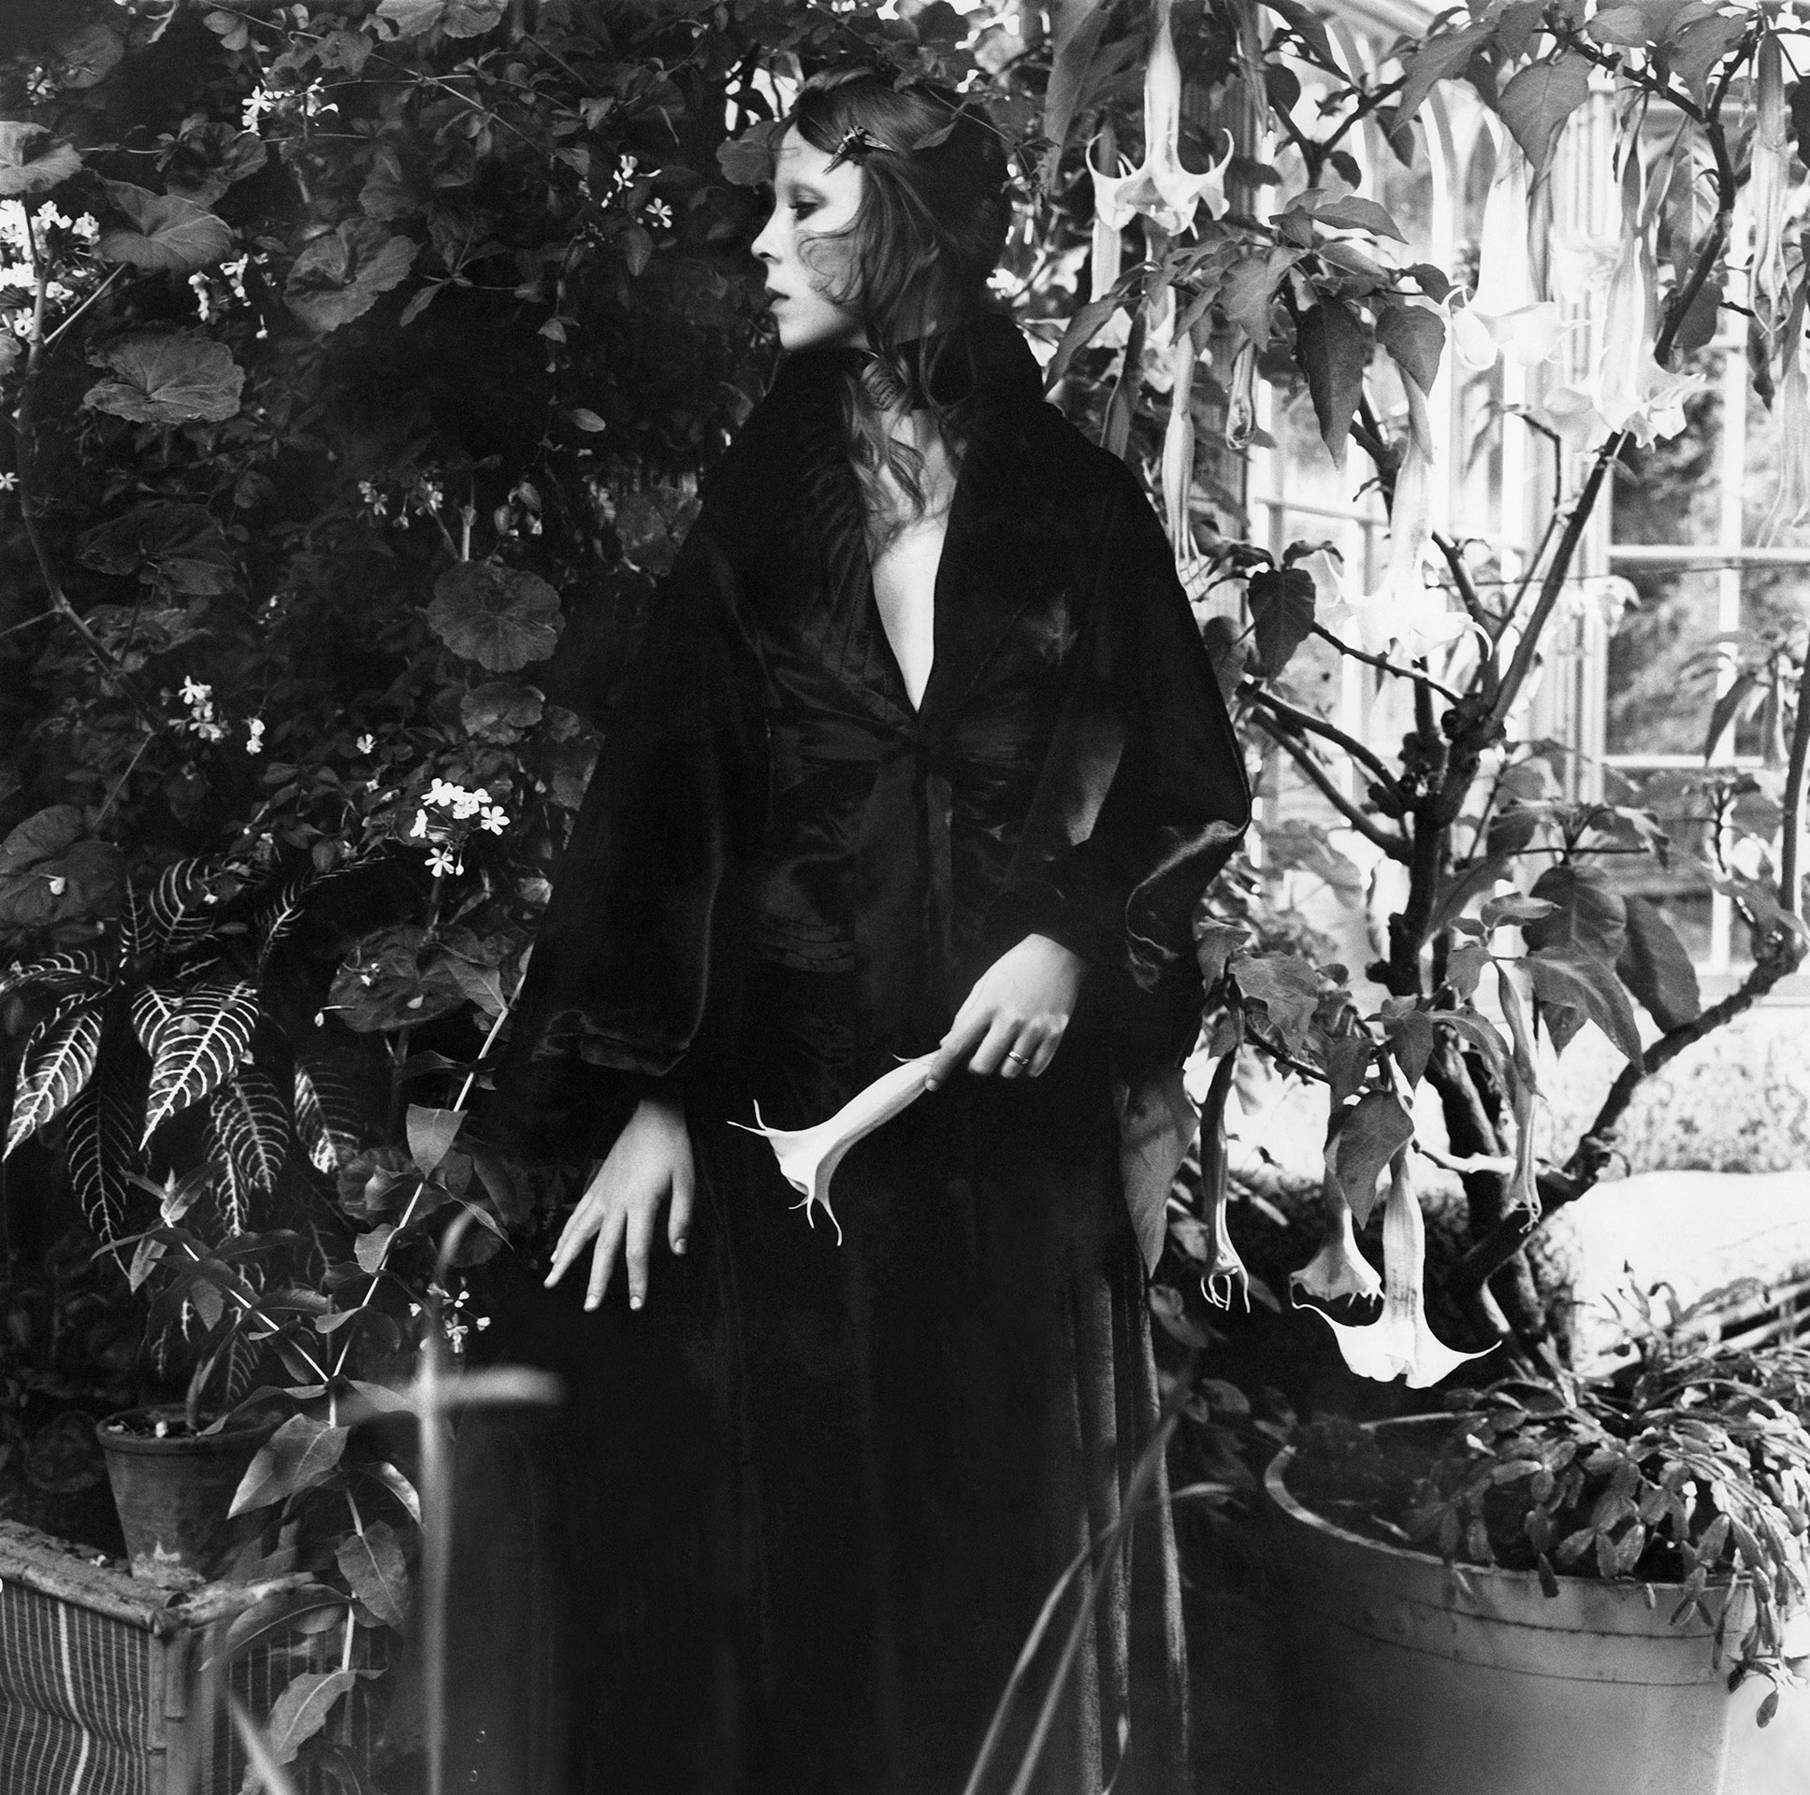 Penelope Tree in the Winter Garden Conservatory of Cecil Beaton's Wiltshire home, December 1970 © Cecil Beaton